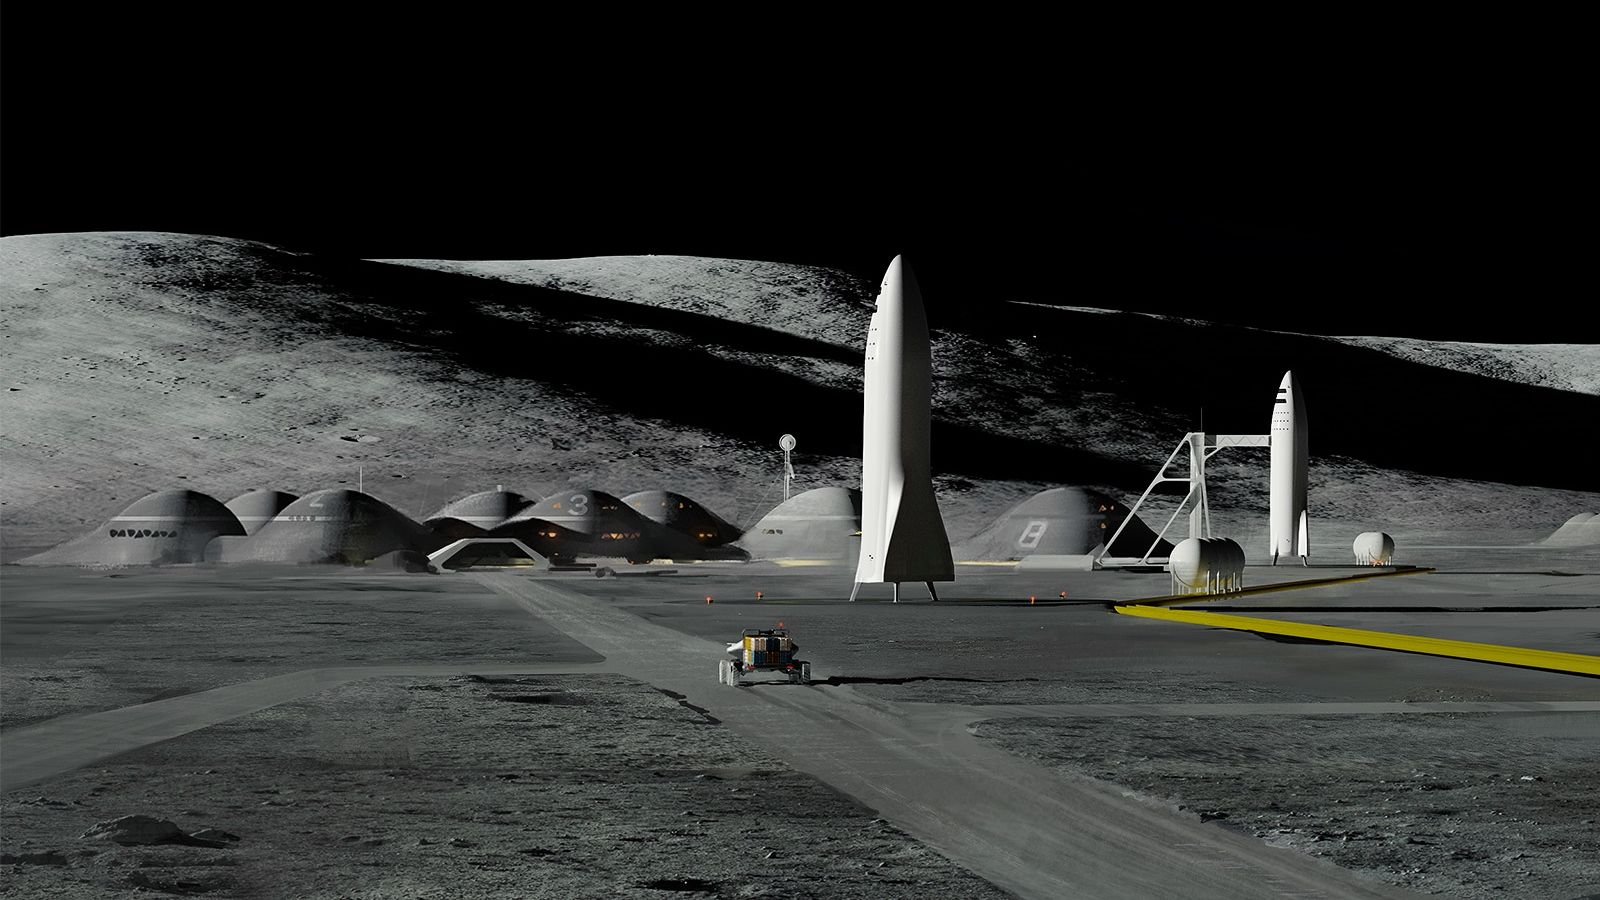 SpaceX Moon Base Alpha | Space and astronomy, Space travel, Spacex starship